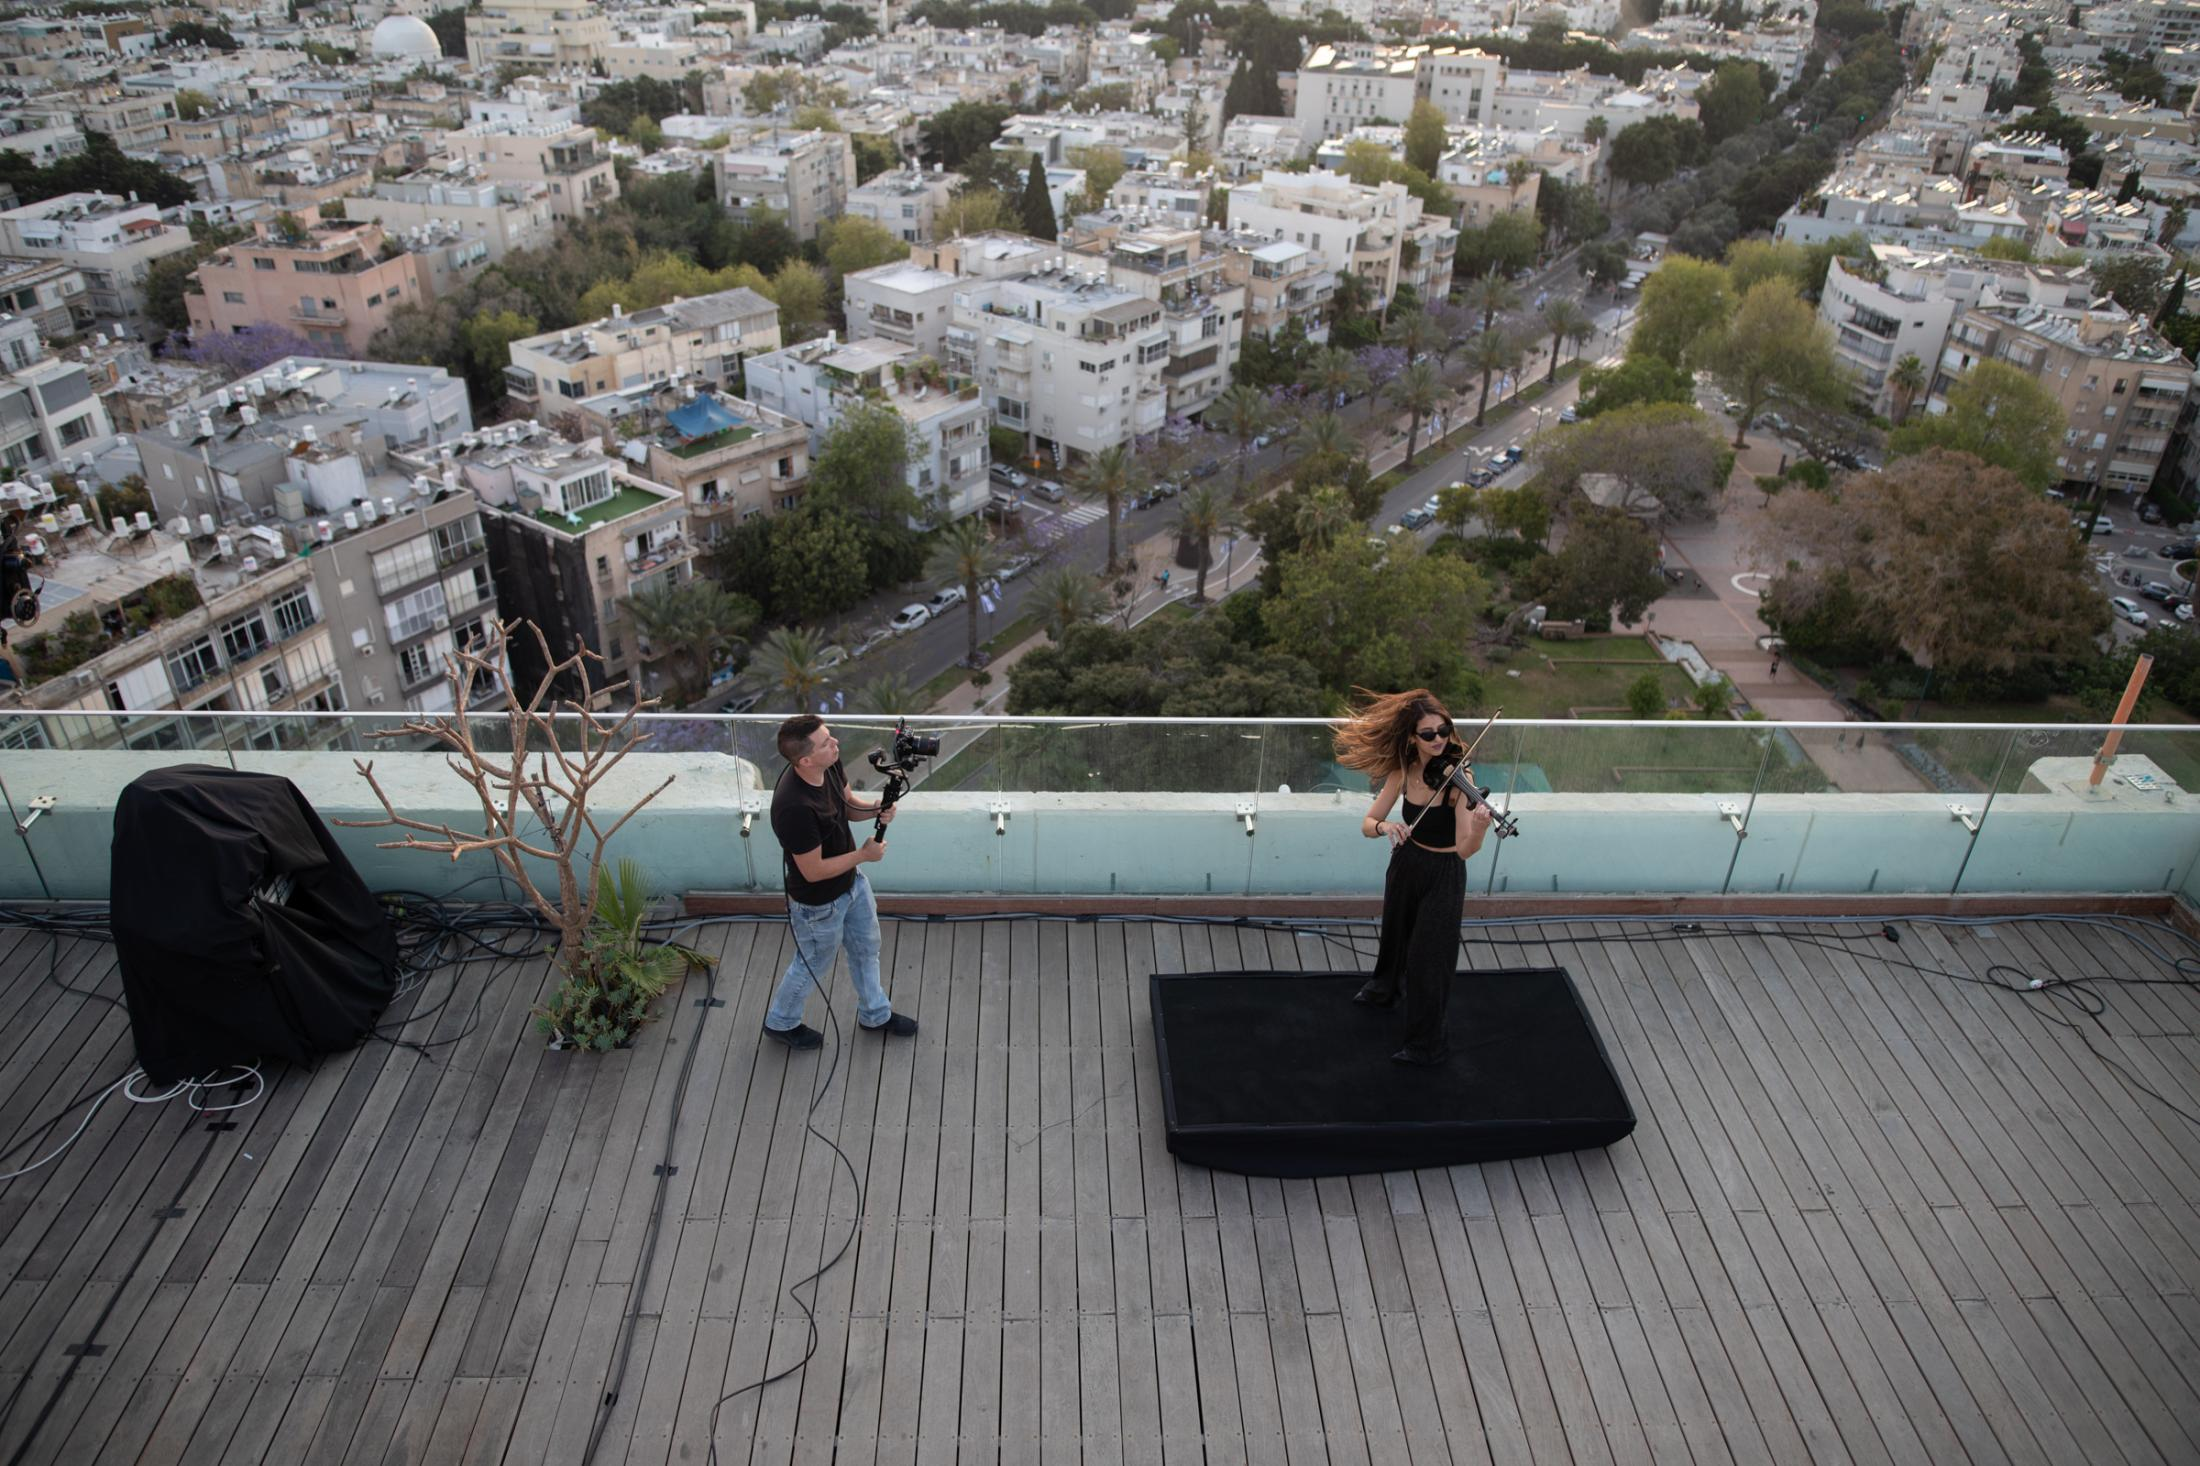 """Violinist Eden Enbar, 28, plays violin during an online party that is broadcasted live via Facebook from the roof of the Tel Aviv municipality building, Tel Aviv, Israel, April 29, 2020. """"It's really weird to perform without a crowd, because we perform for the energy. Now you have to keep up the energy yourself all the time, because you don't have the crowd to do it for you. But since it's already happening for two months we got a bit used to it."""""""